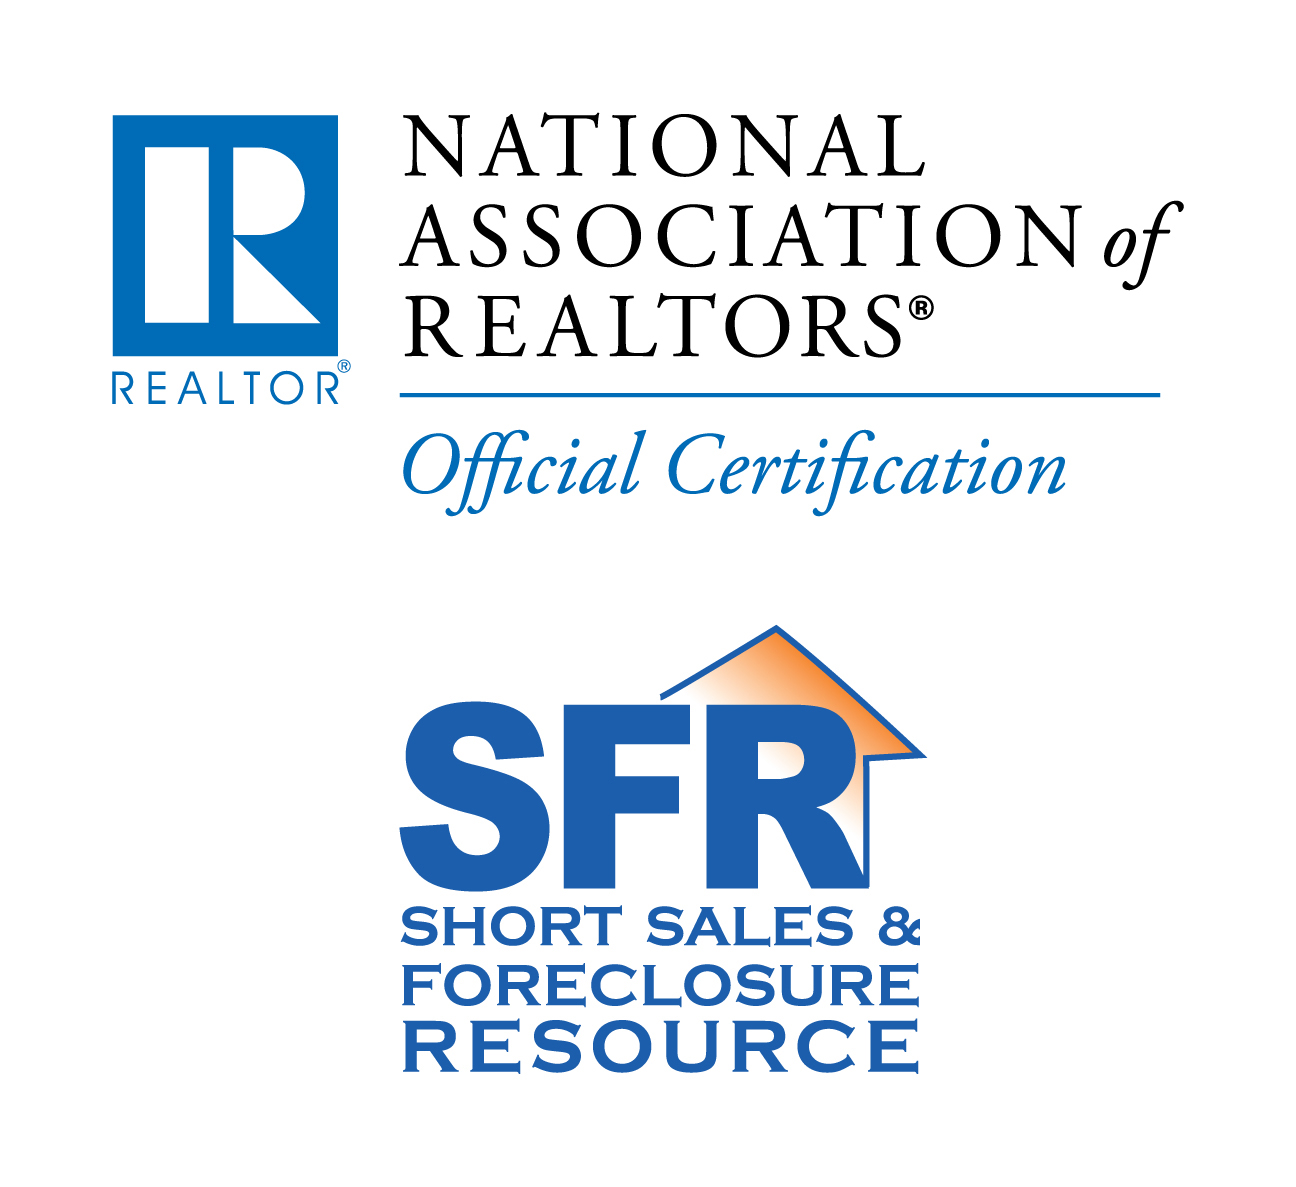 SFR® SHORT SALES & FORECLOSURE RESOURCE CERTIFICATION